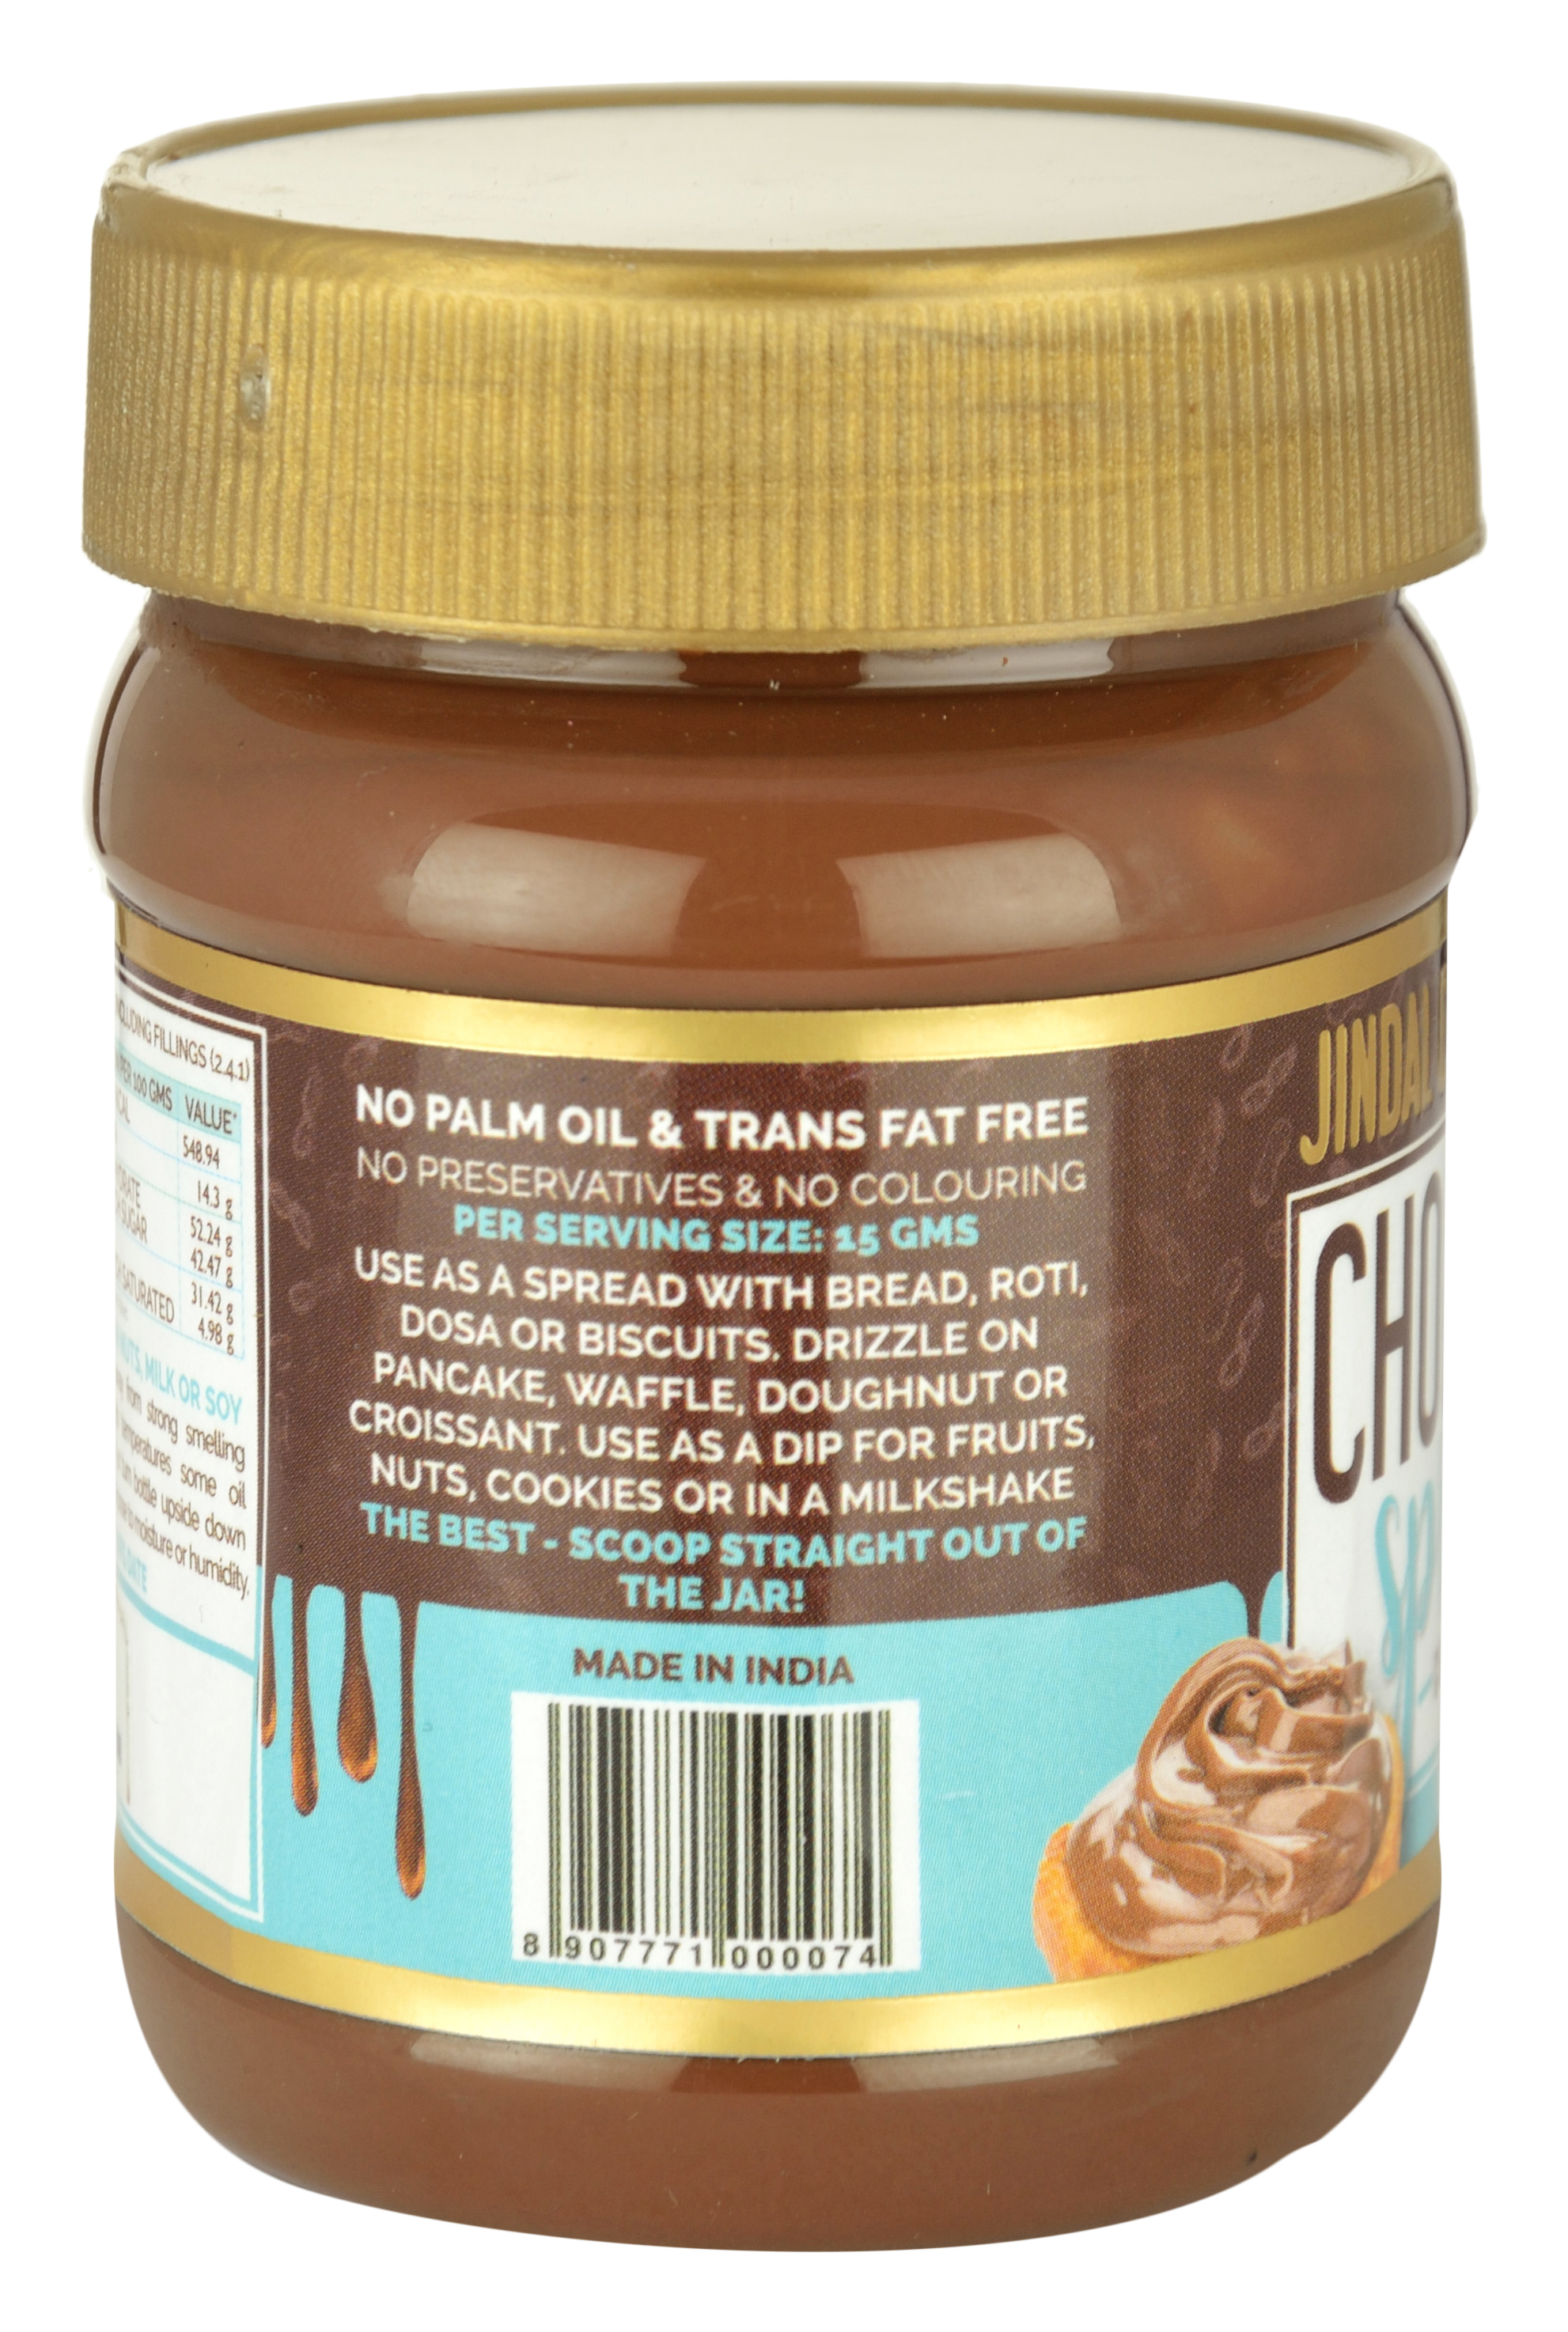 Chocolate-Spreads-Cocoa-Peanut-Cream160_4